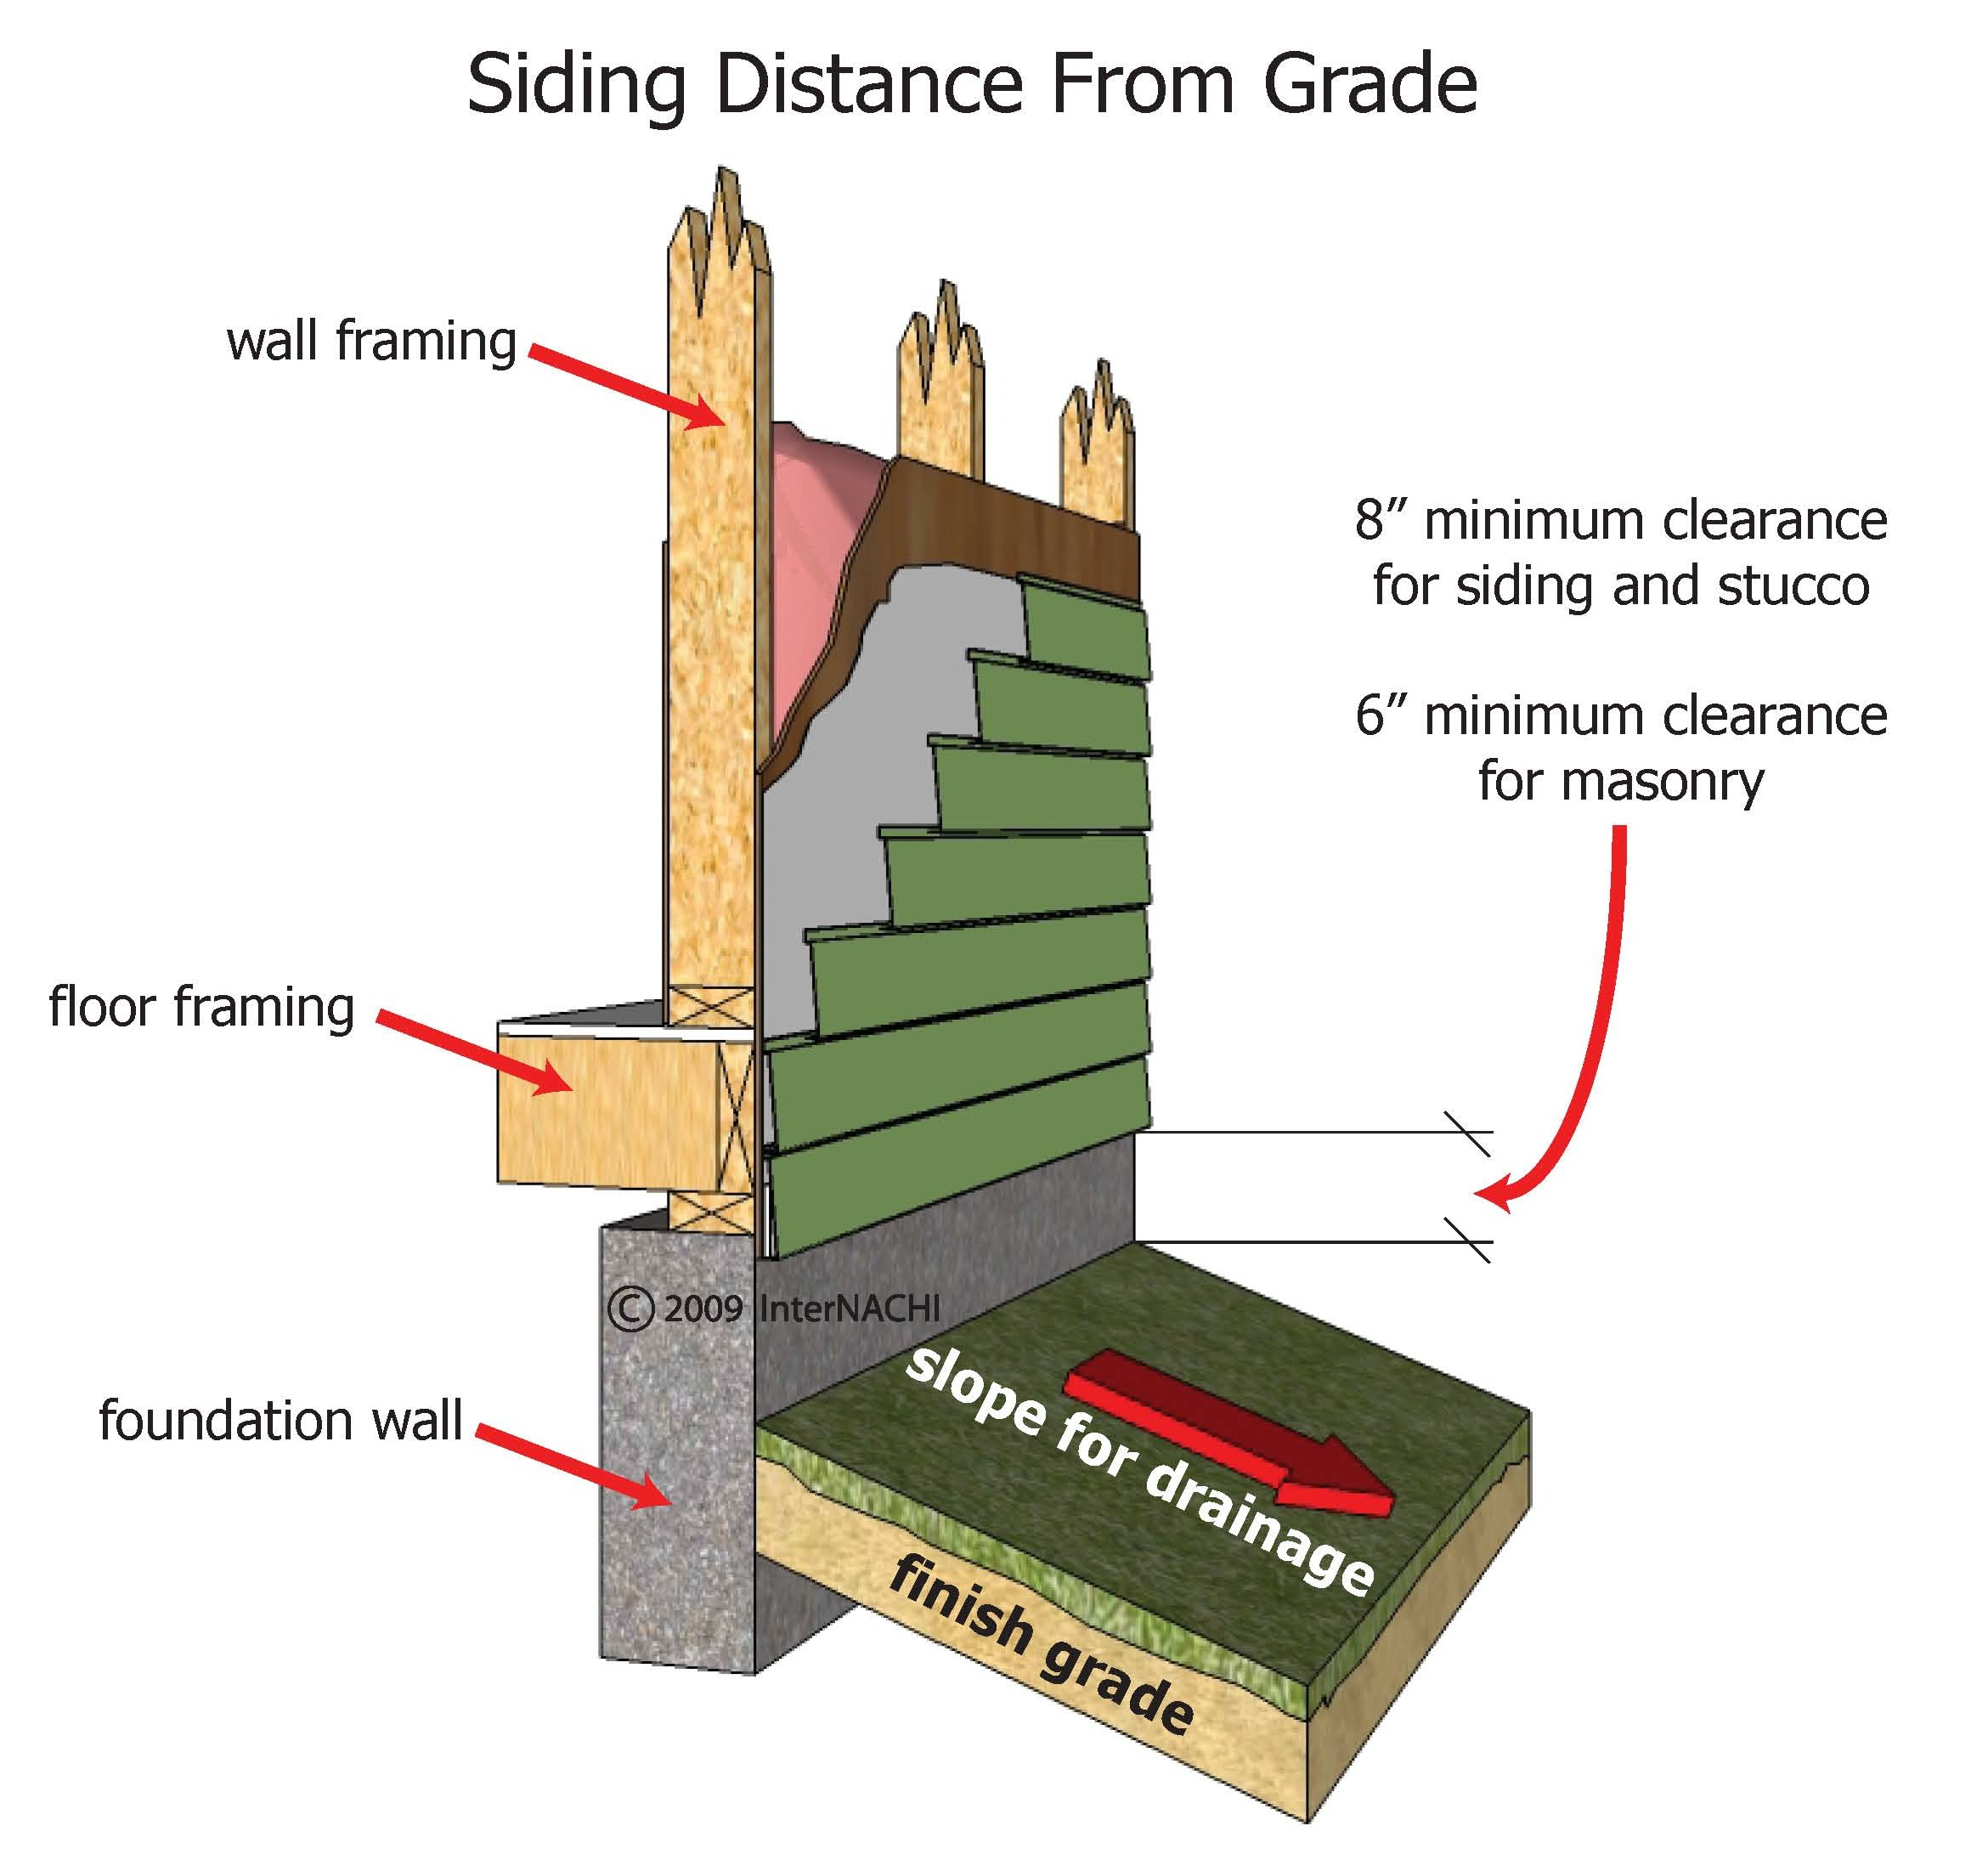 Siding distance from grade.